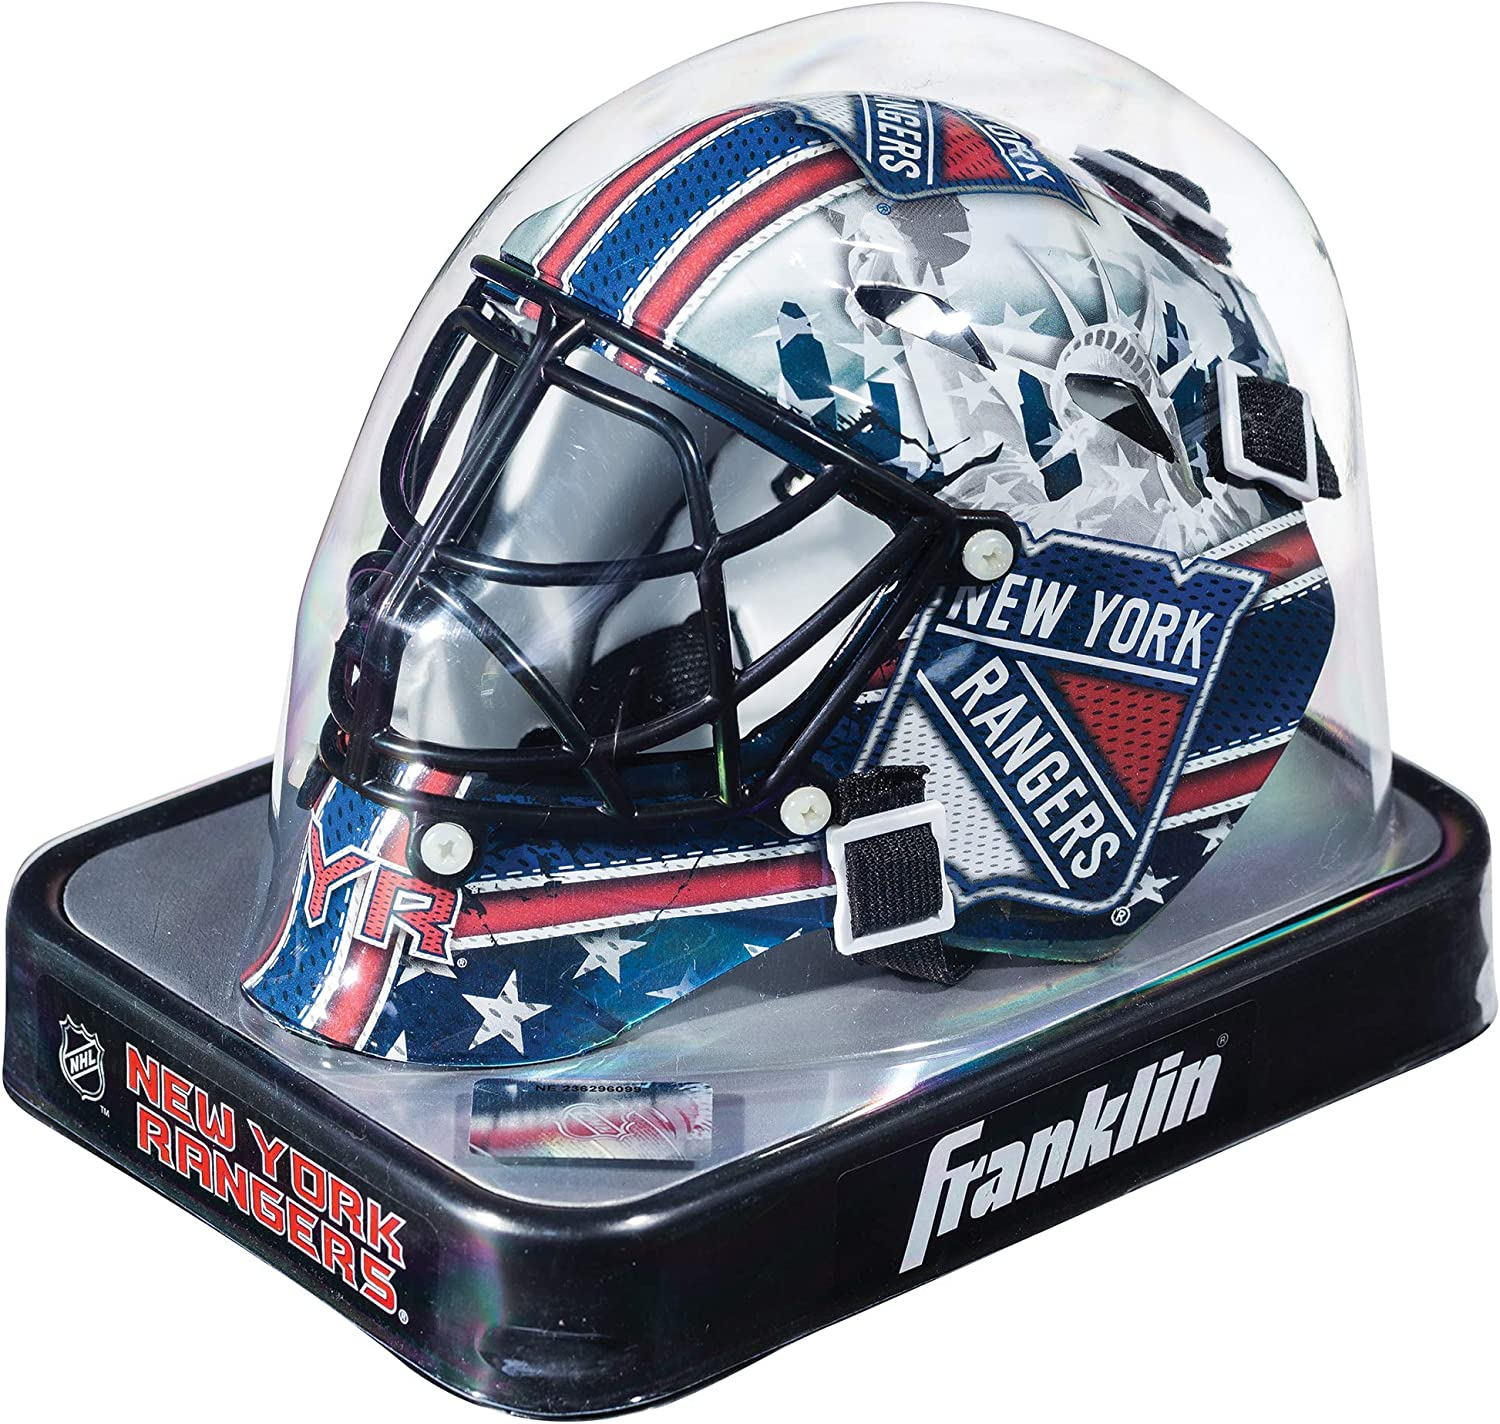 Franklin Sports New York Rangers NHL Team Logo Mini Hockey Goalie Mask with Case - Collectible Goalie Mask with Official NHL Logos and Colors : Hockey Goalie Masks : Sports & Outdoors